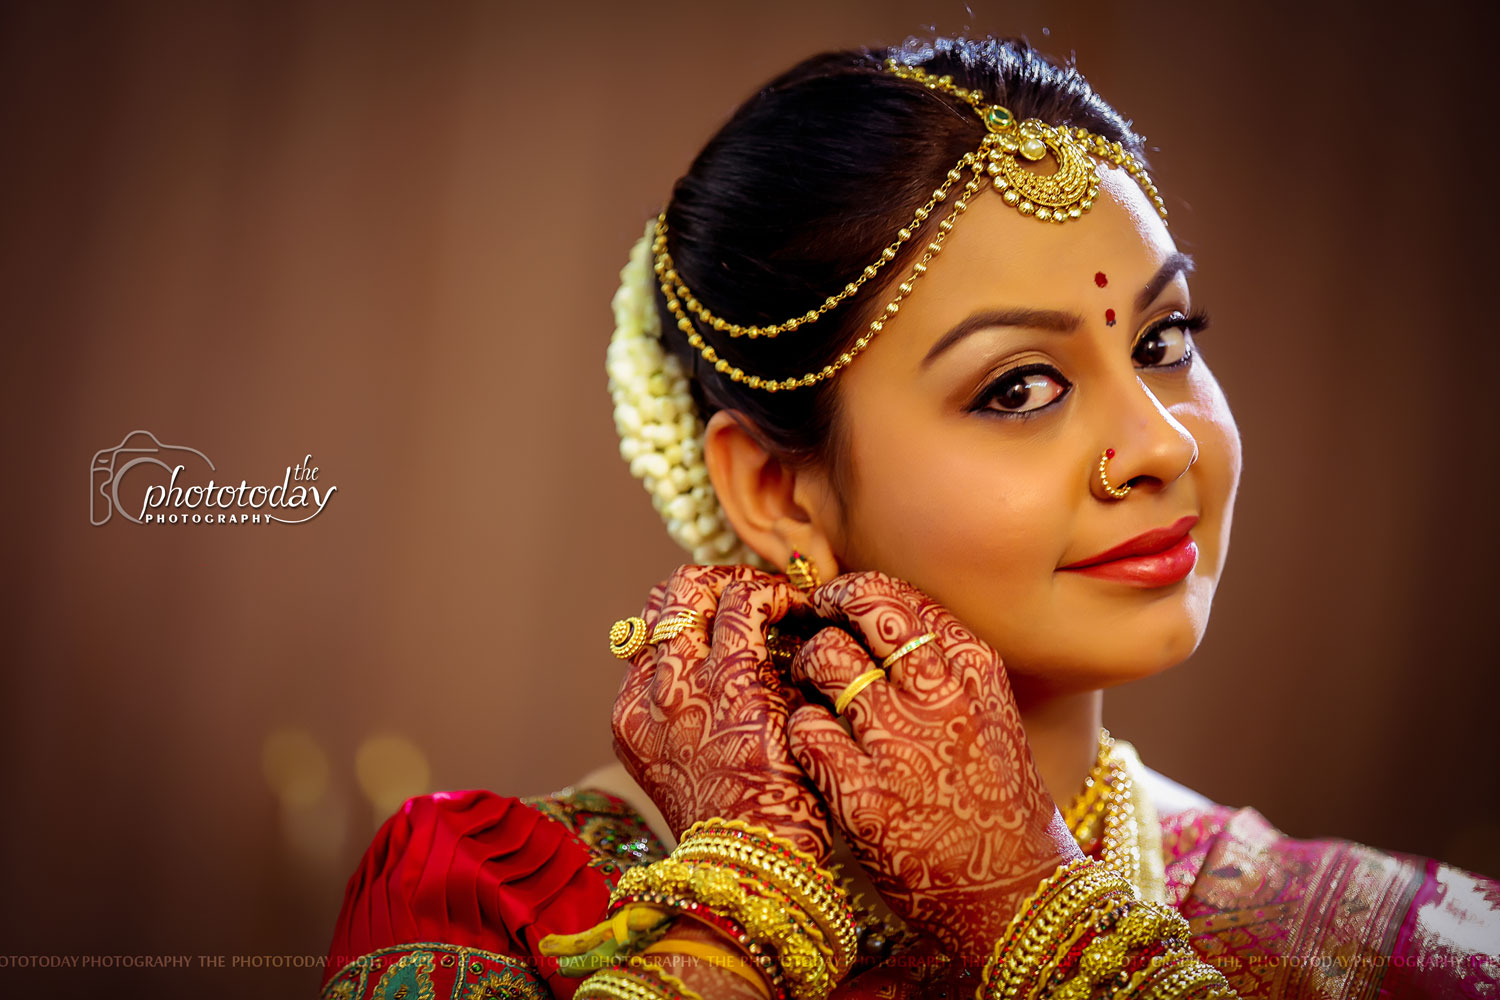 Candid-wedding-photography-29